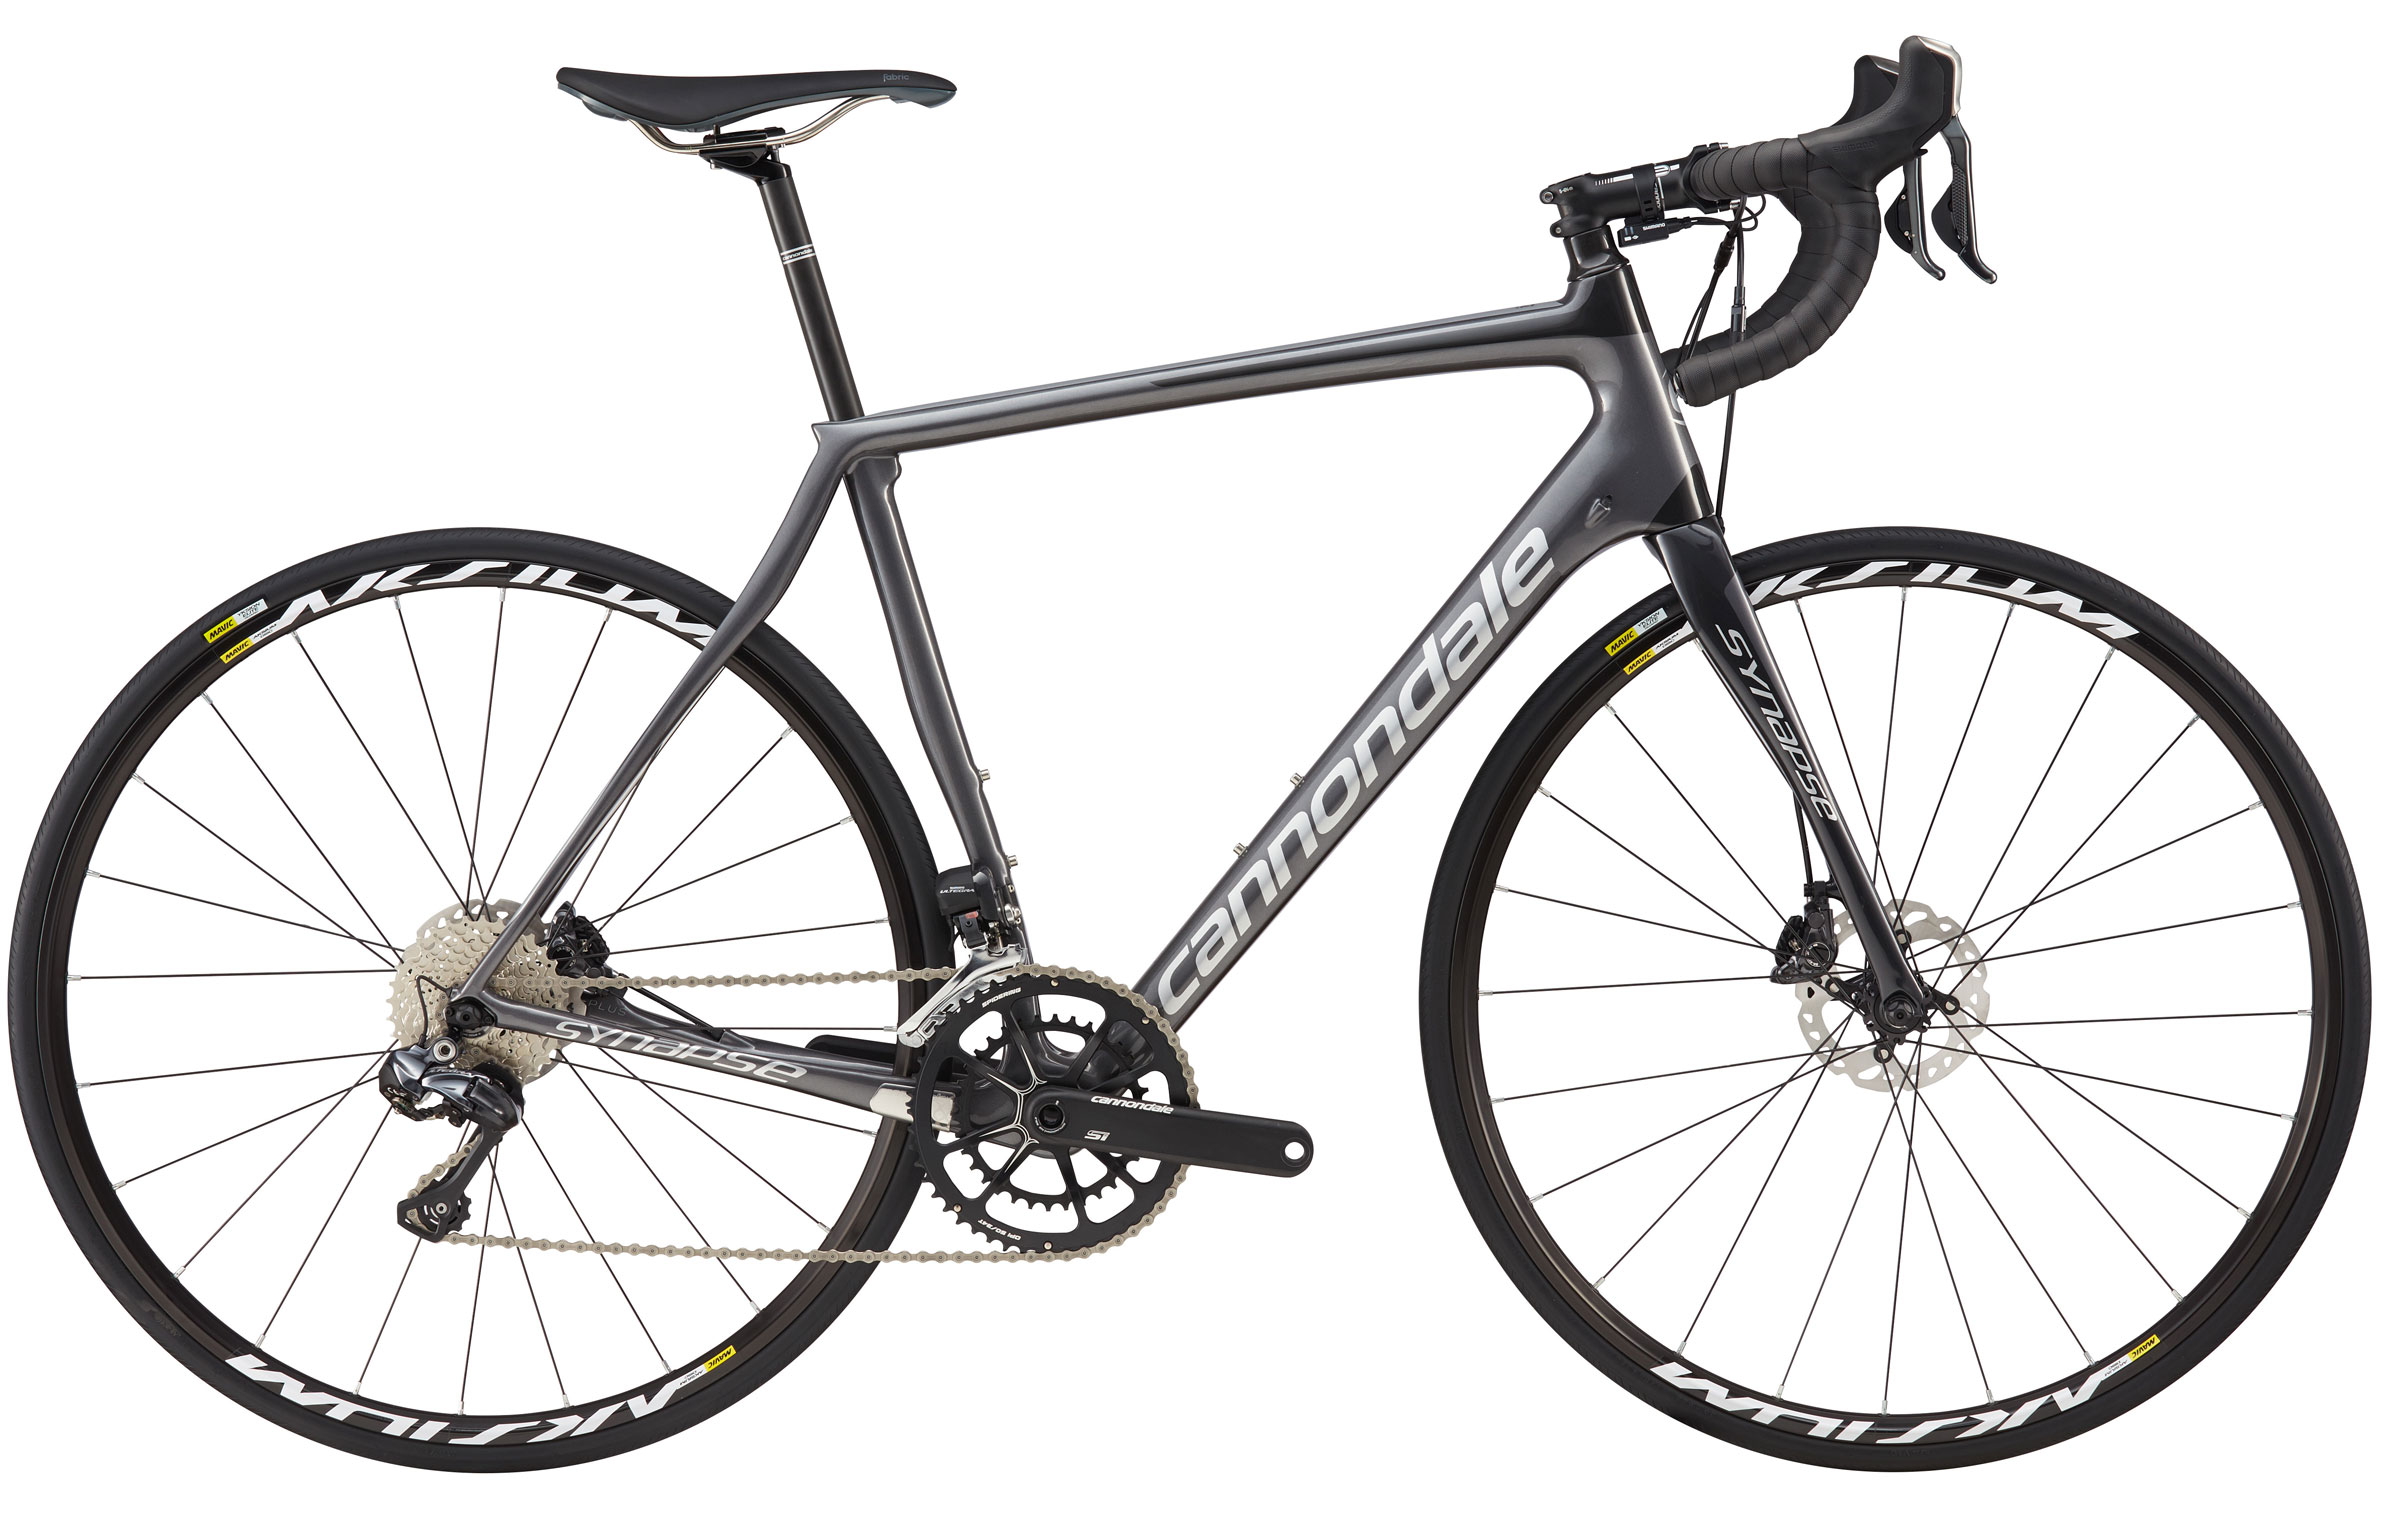 272fa2b0578 Cannondale Synapse Carbon Disc Ultegra Di2 - Don's Bicycles